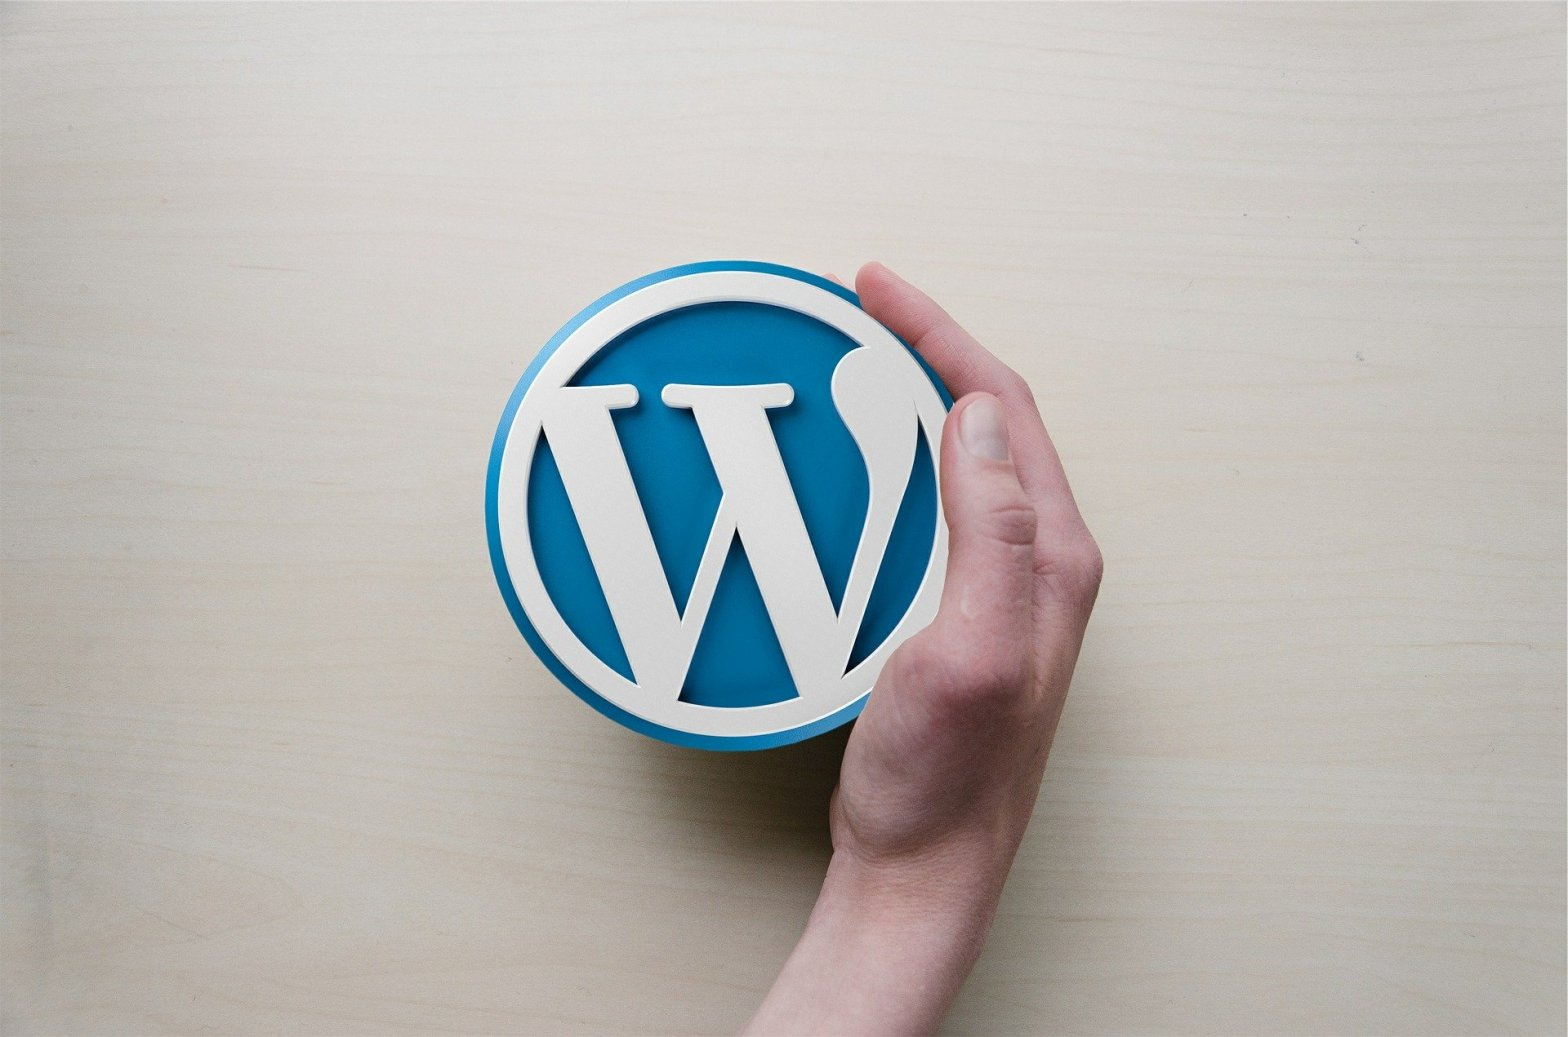 blue wordpress logo puck